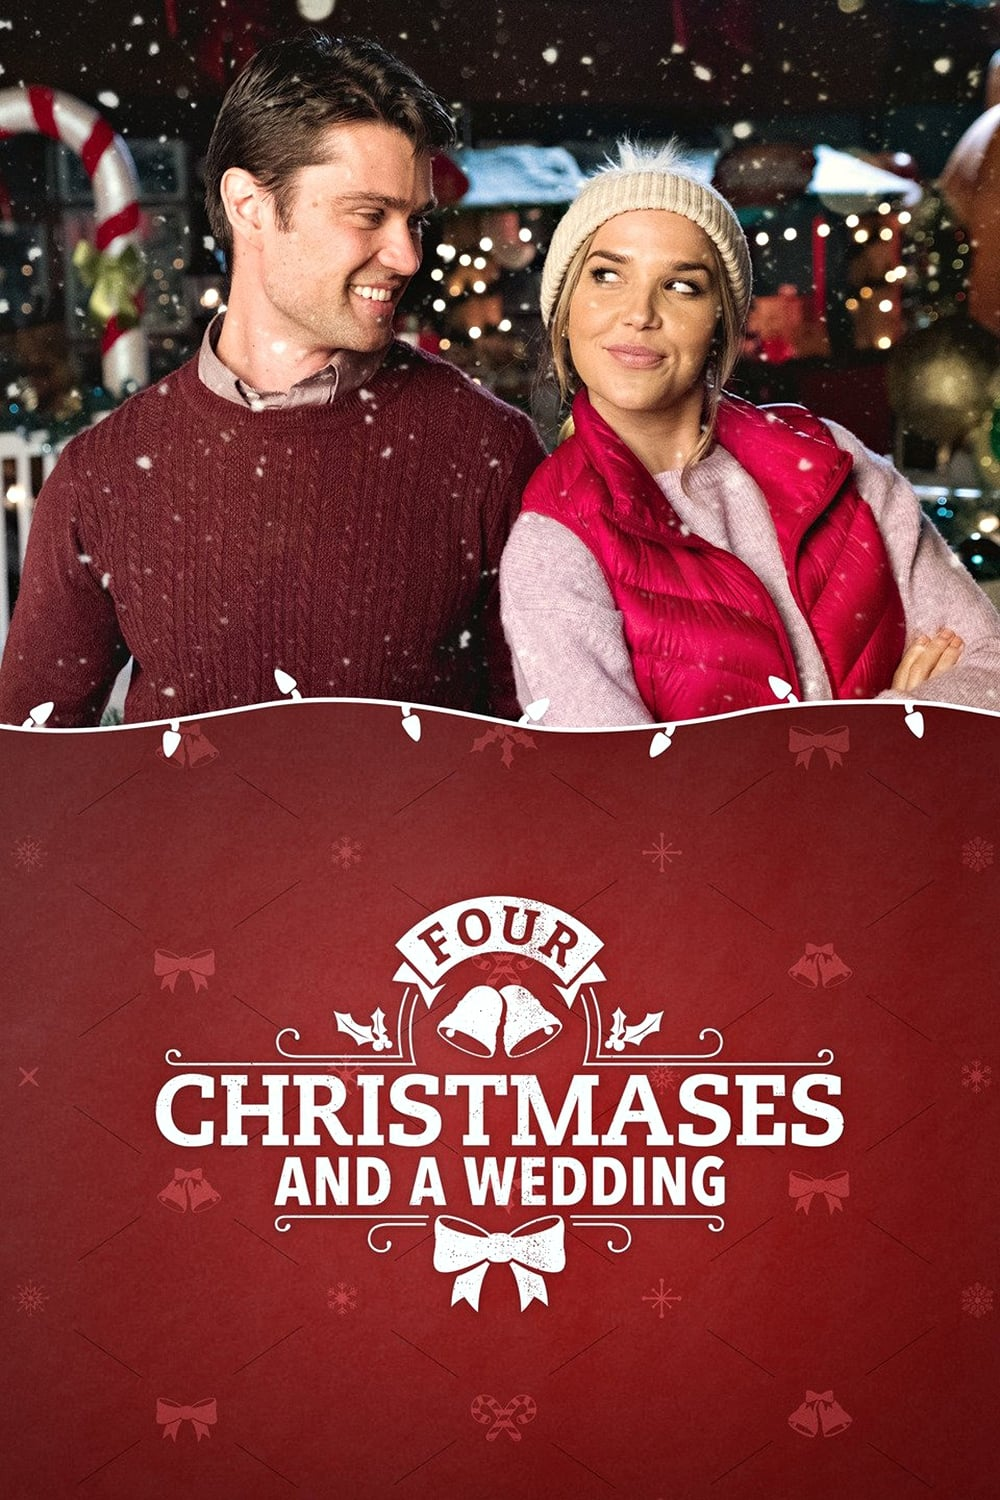 Image Four Christmases and a Wedding